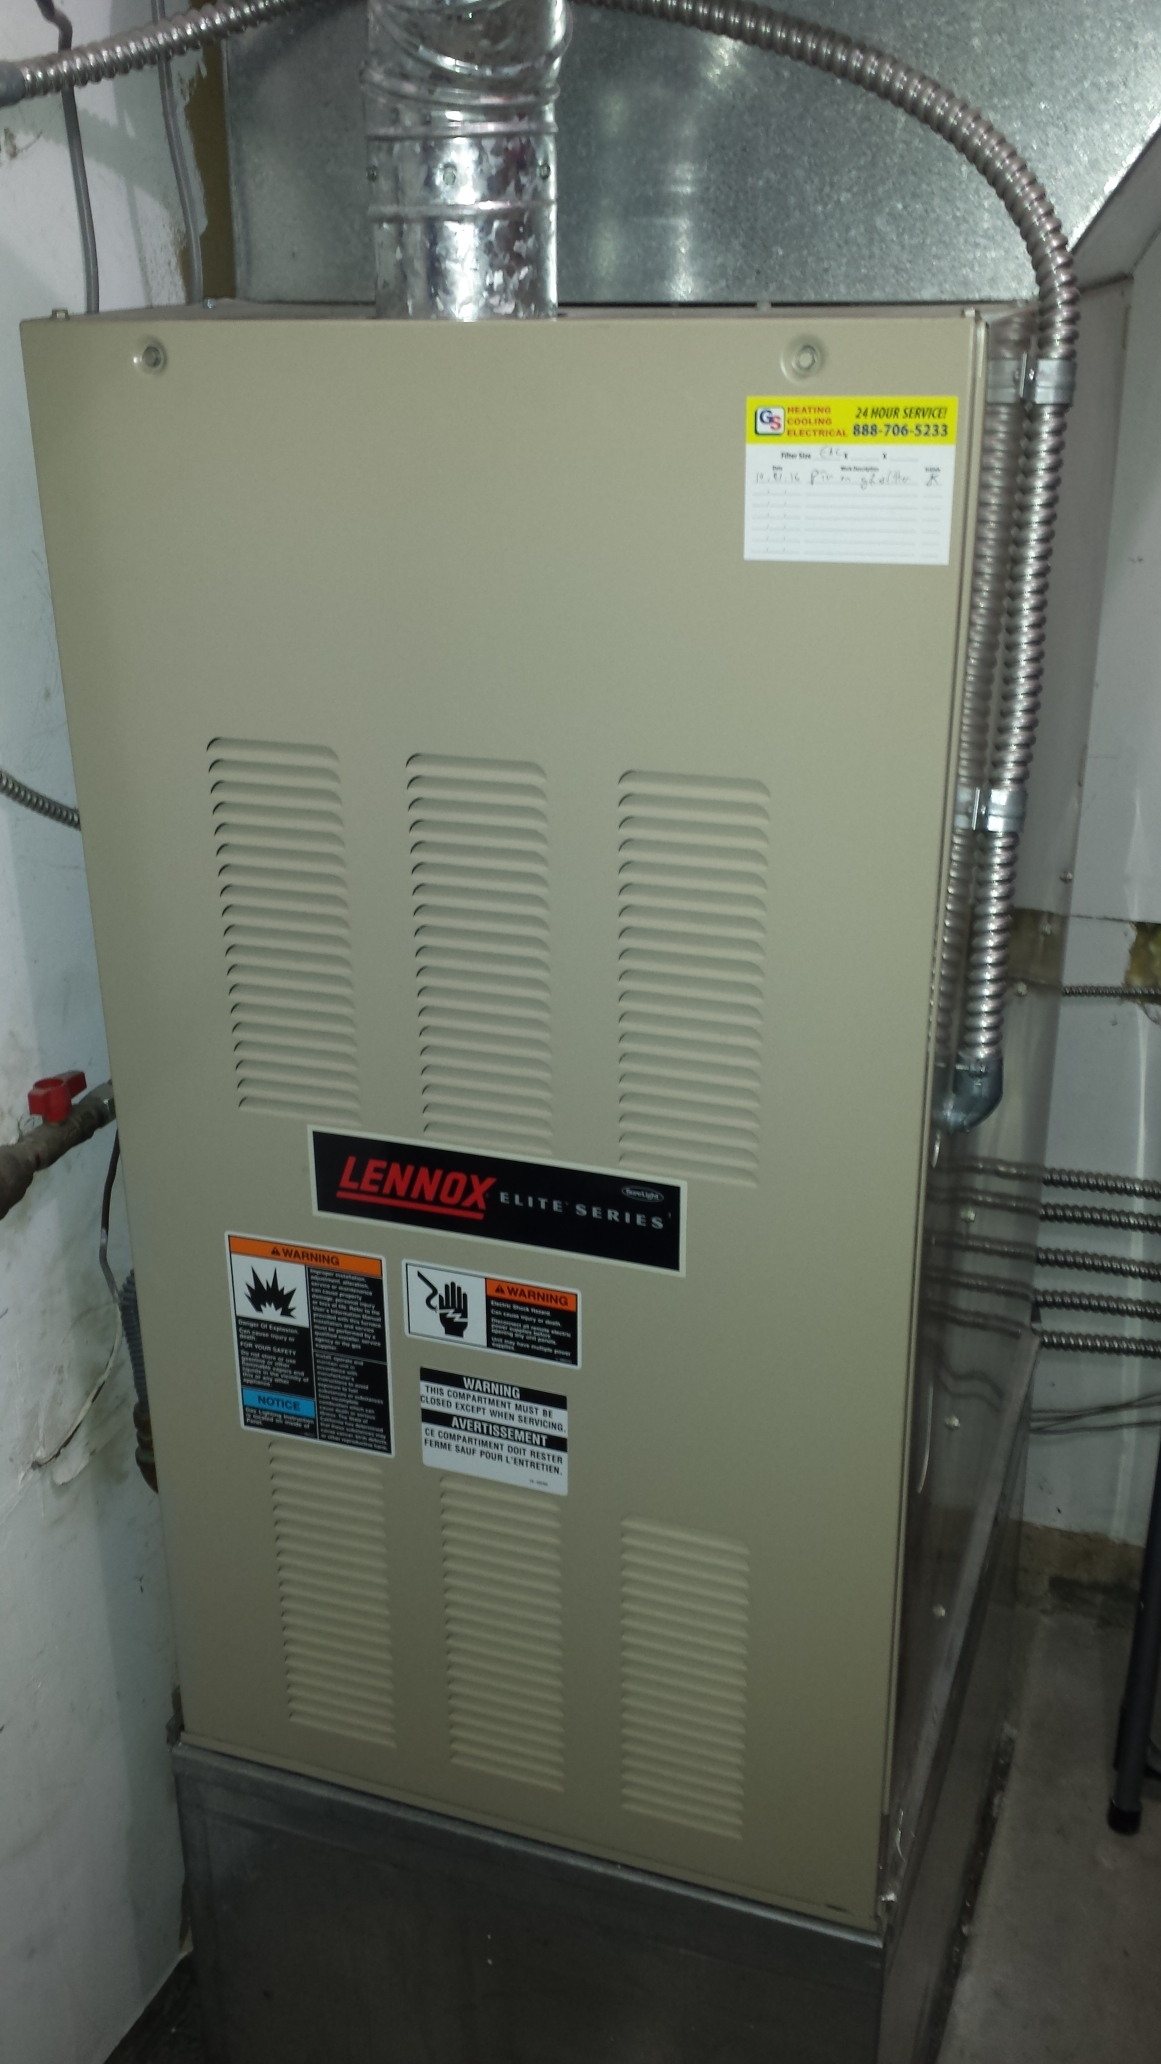 Completed service on a Lennox gas furnace in Sultan.